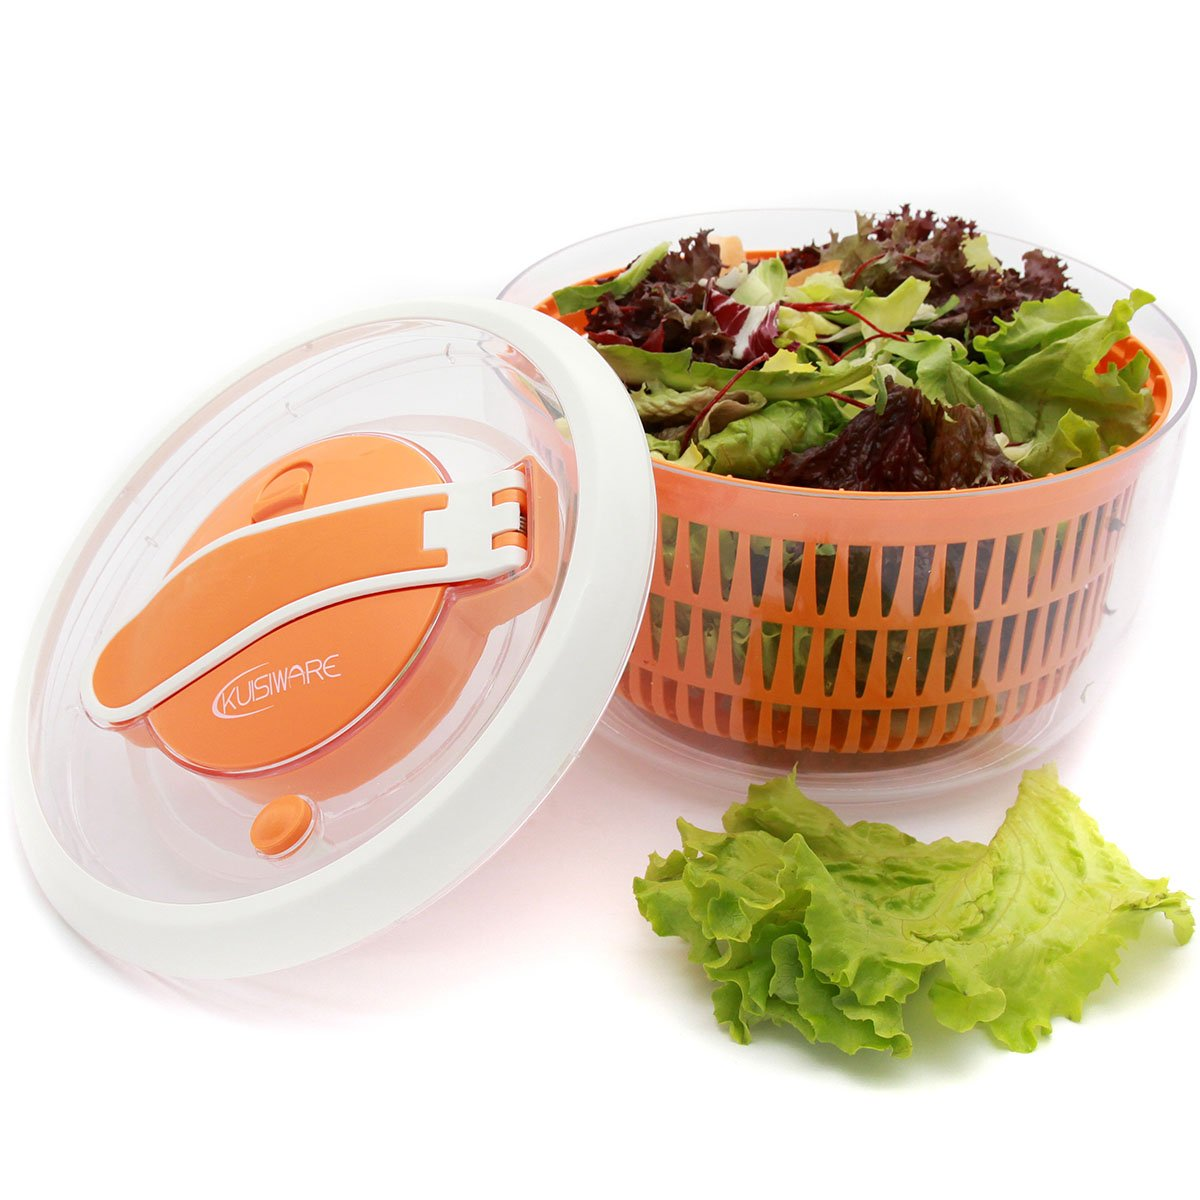 Salad Spinner (Because What Guy Wants to Wash Veggies)